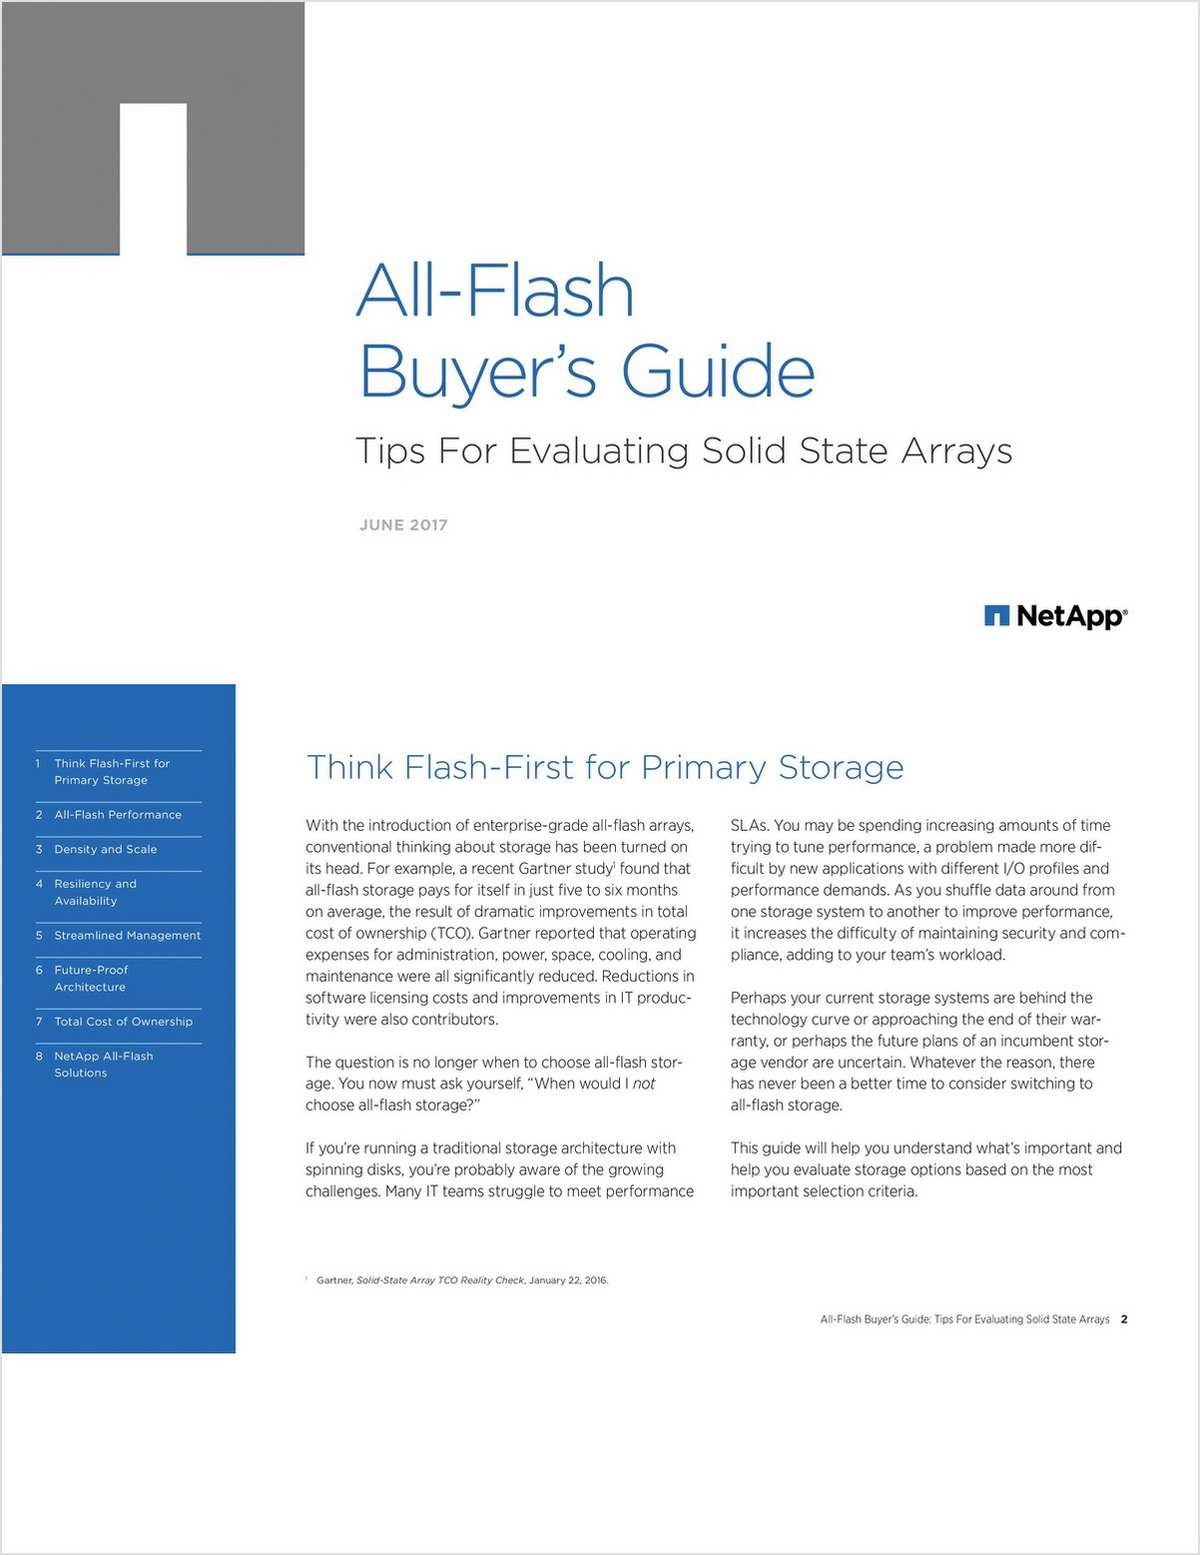 All-Flash Buyer's Guide: Tips For Evaluating Solid State Arrays